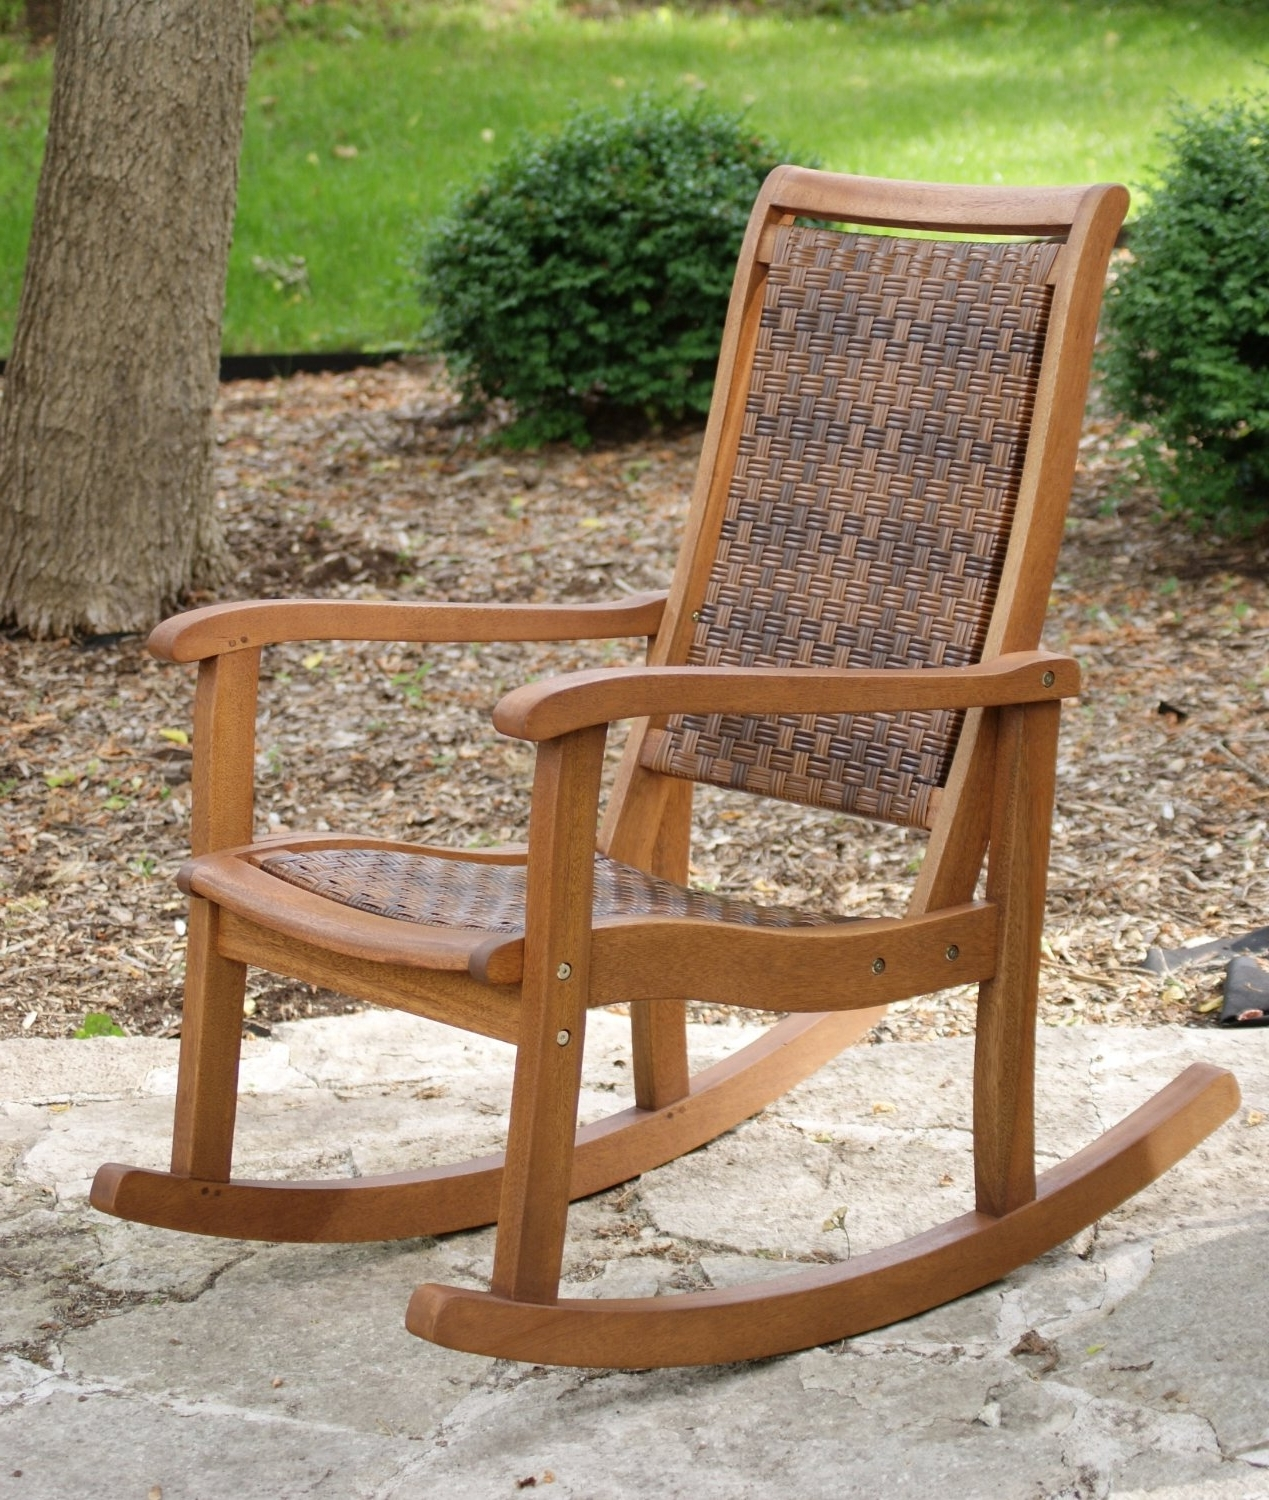 2019 Great Rocking Patio Chairs Outdoor Wicker Rocking Chairs Patio In Outdoor Vinyl Rocking Chairs (View 7 of 20)